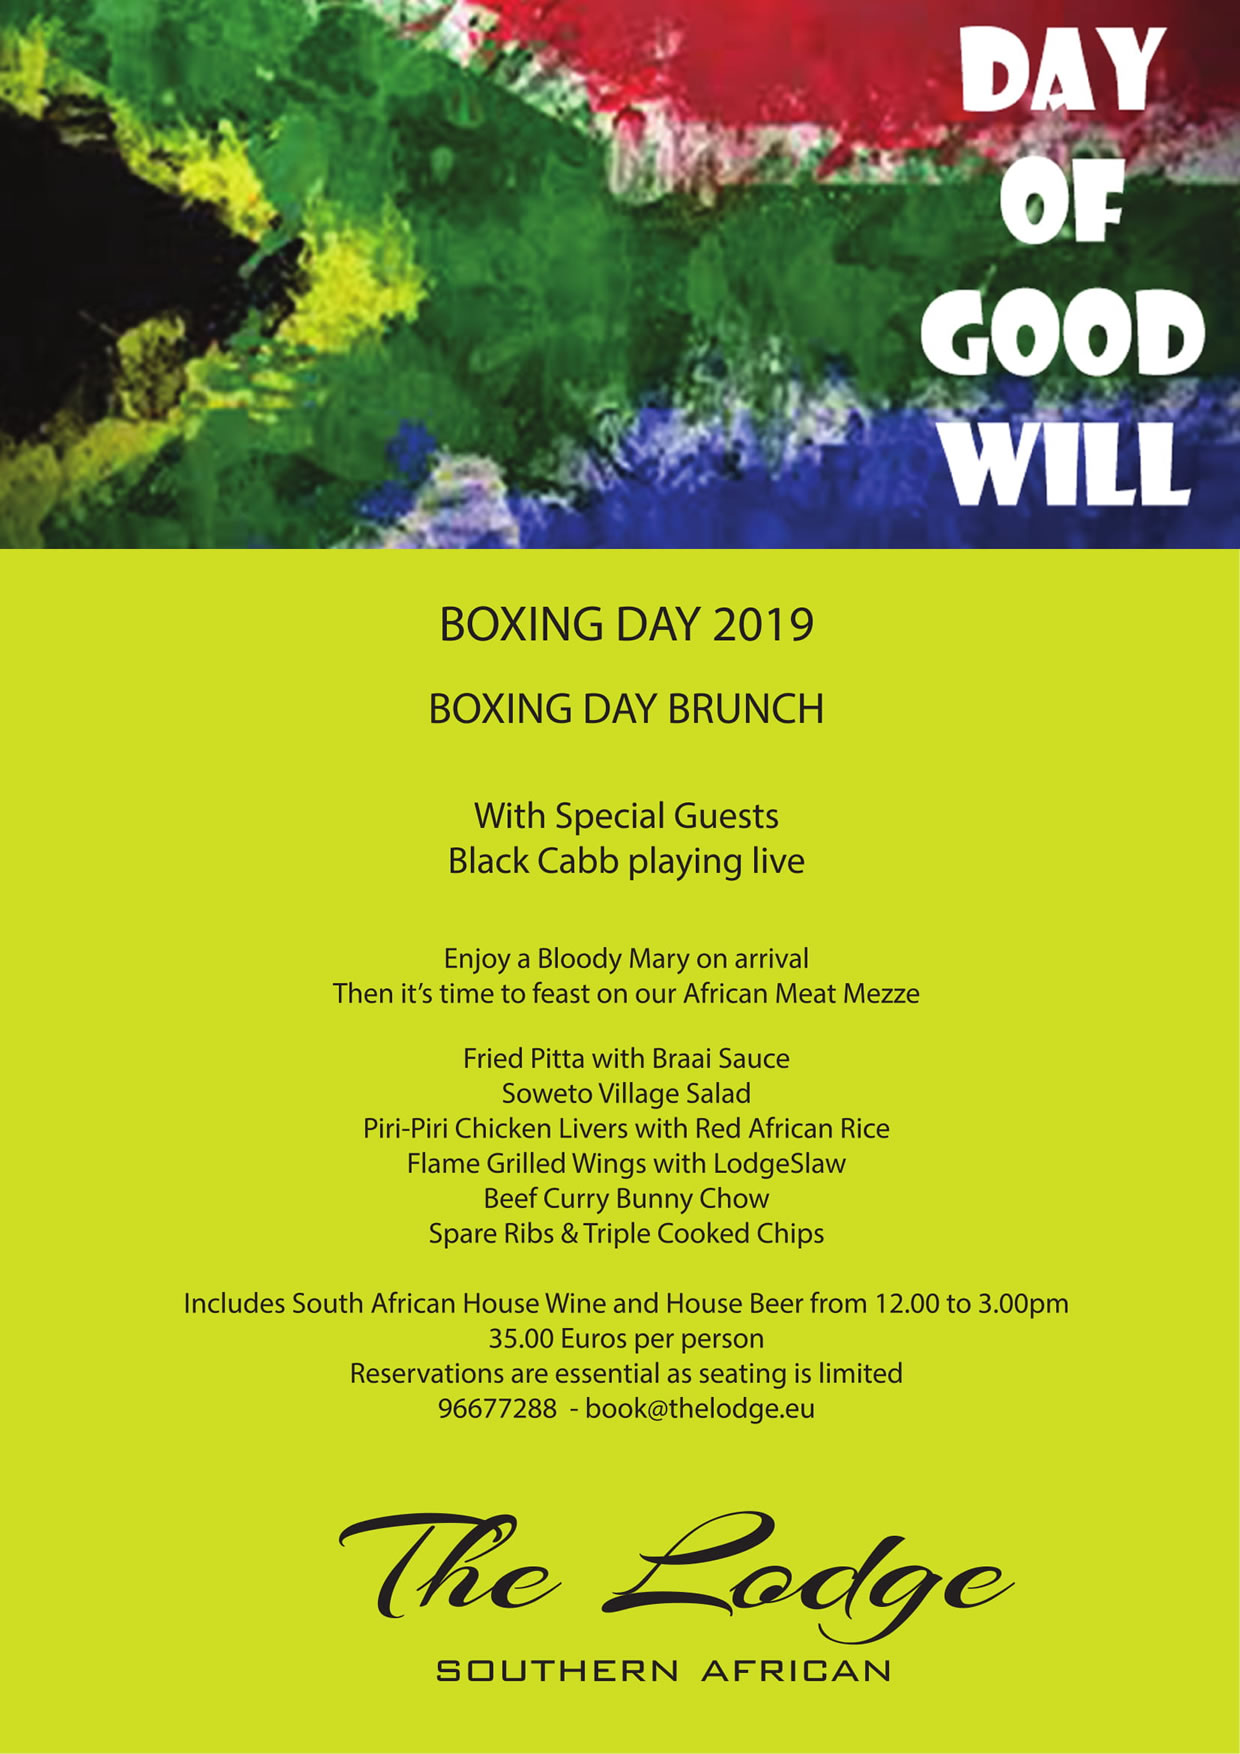 The Lodge Boxing Day Brunch Menu 2019